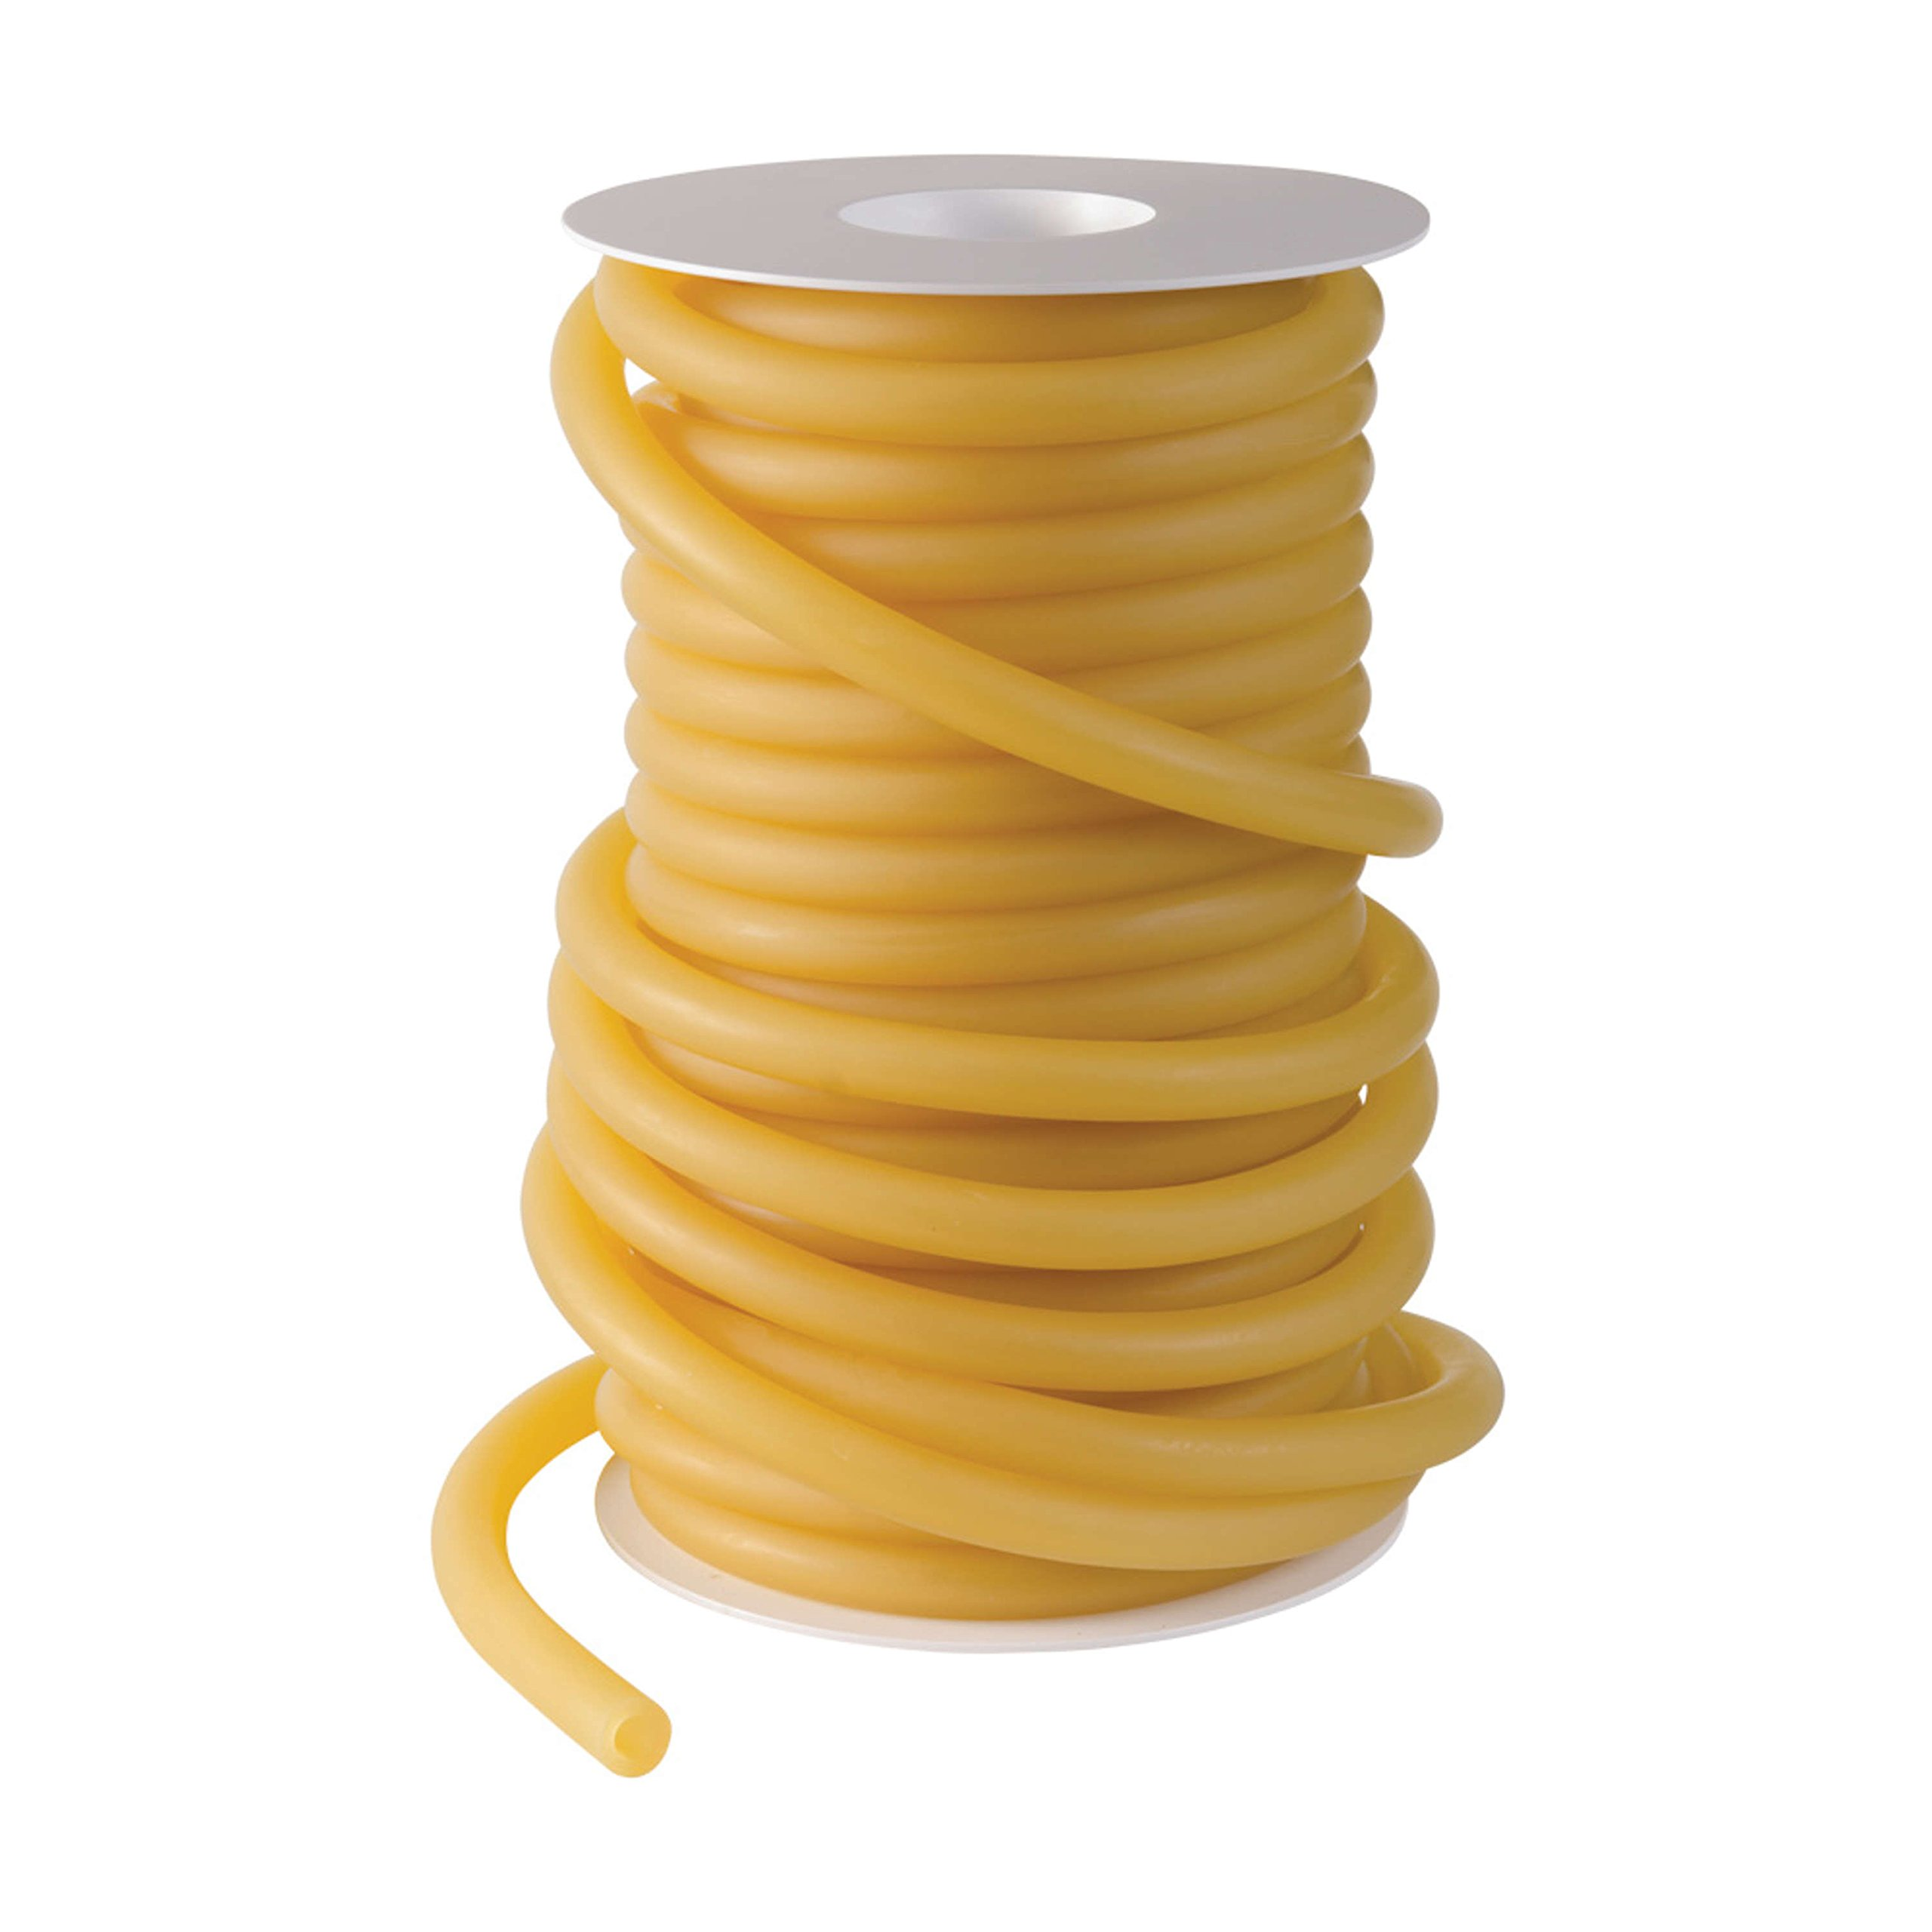 Duro-Med Latex Tubing 50 Foot Reels, 5/16 Inner Diameter, 1/16 Wall Thickness, Stethoscope Size, Amber